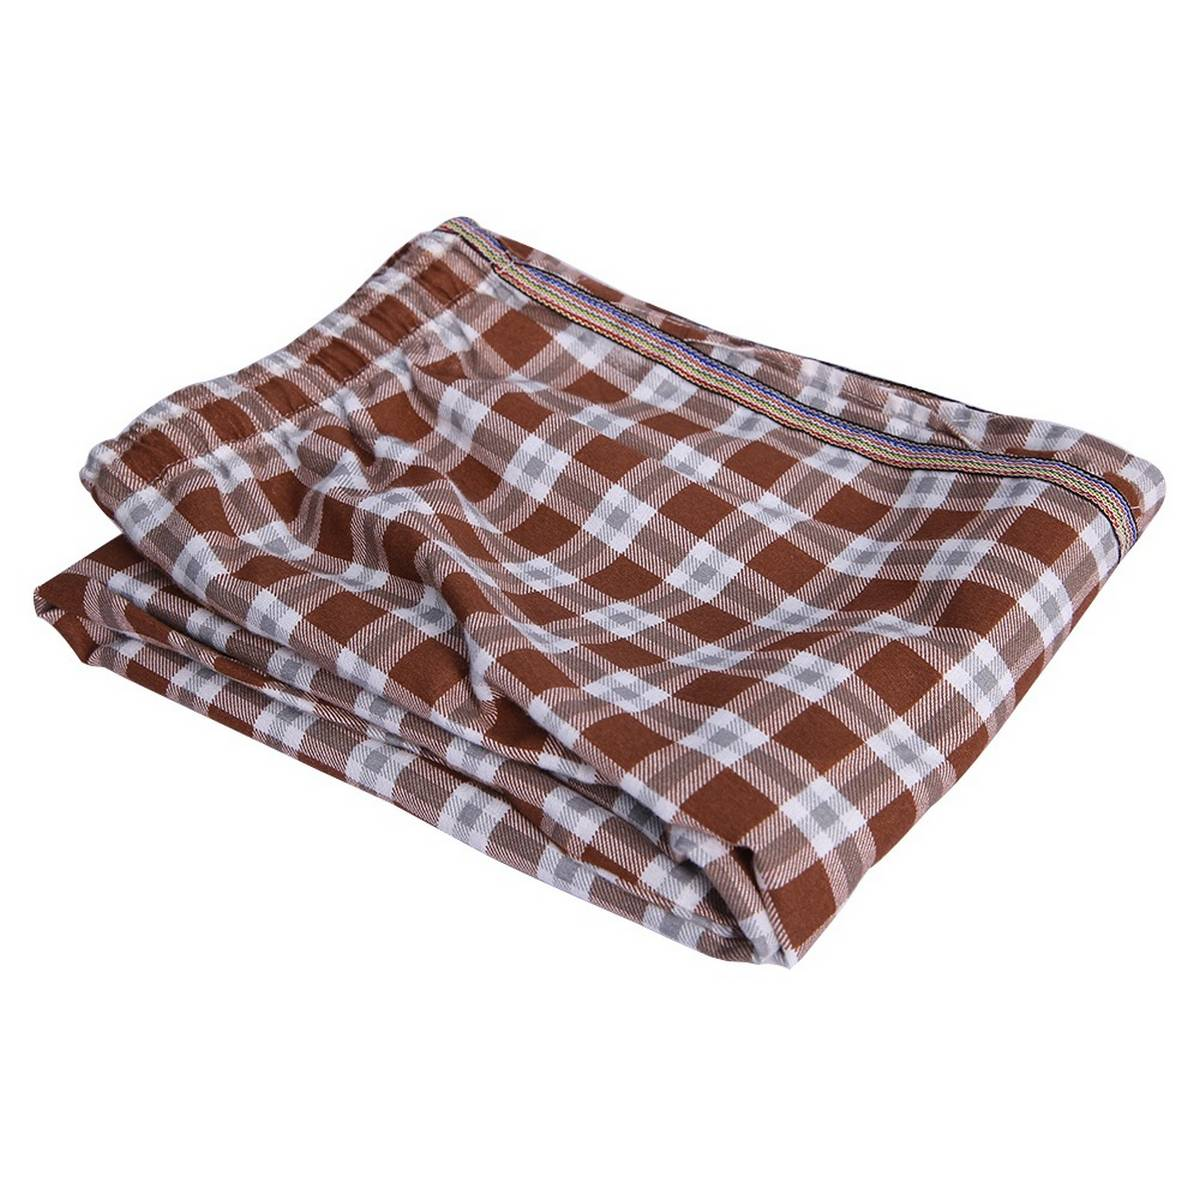 Check Trouser Brown Checks Design Imported Trousers Pajama For Men's